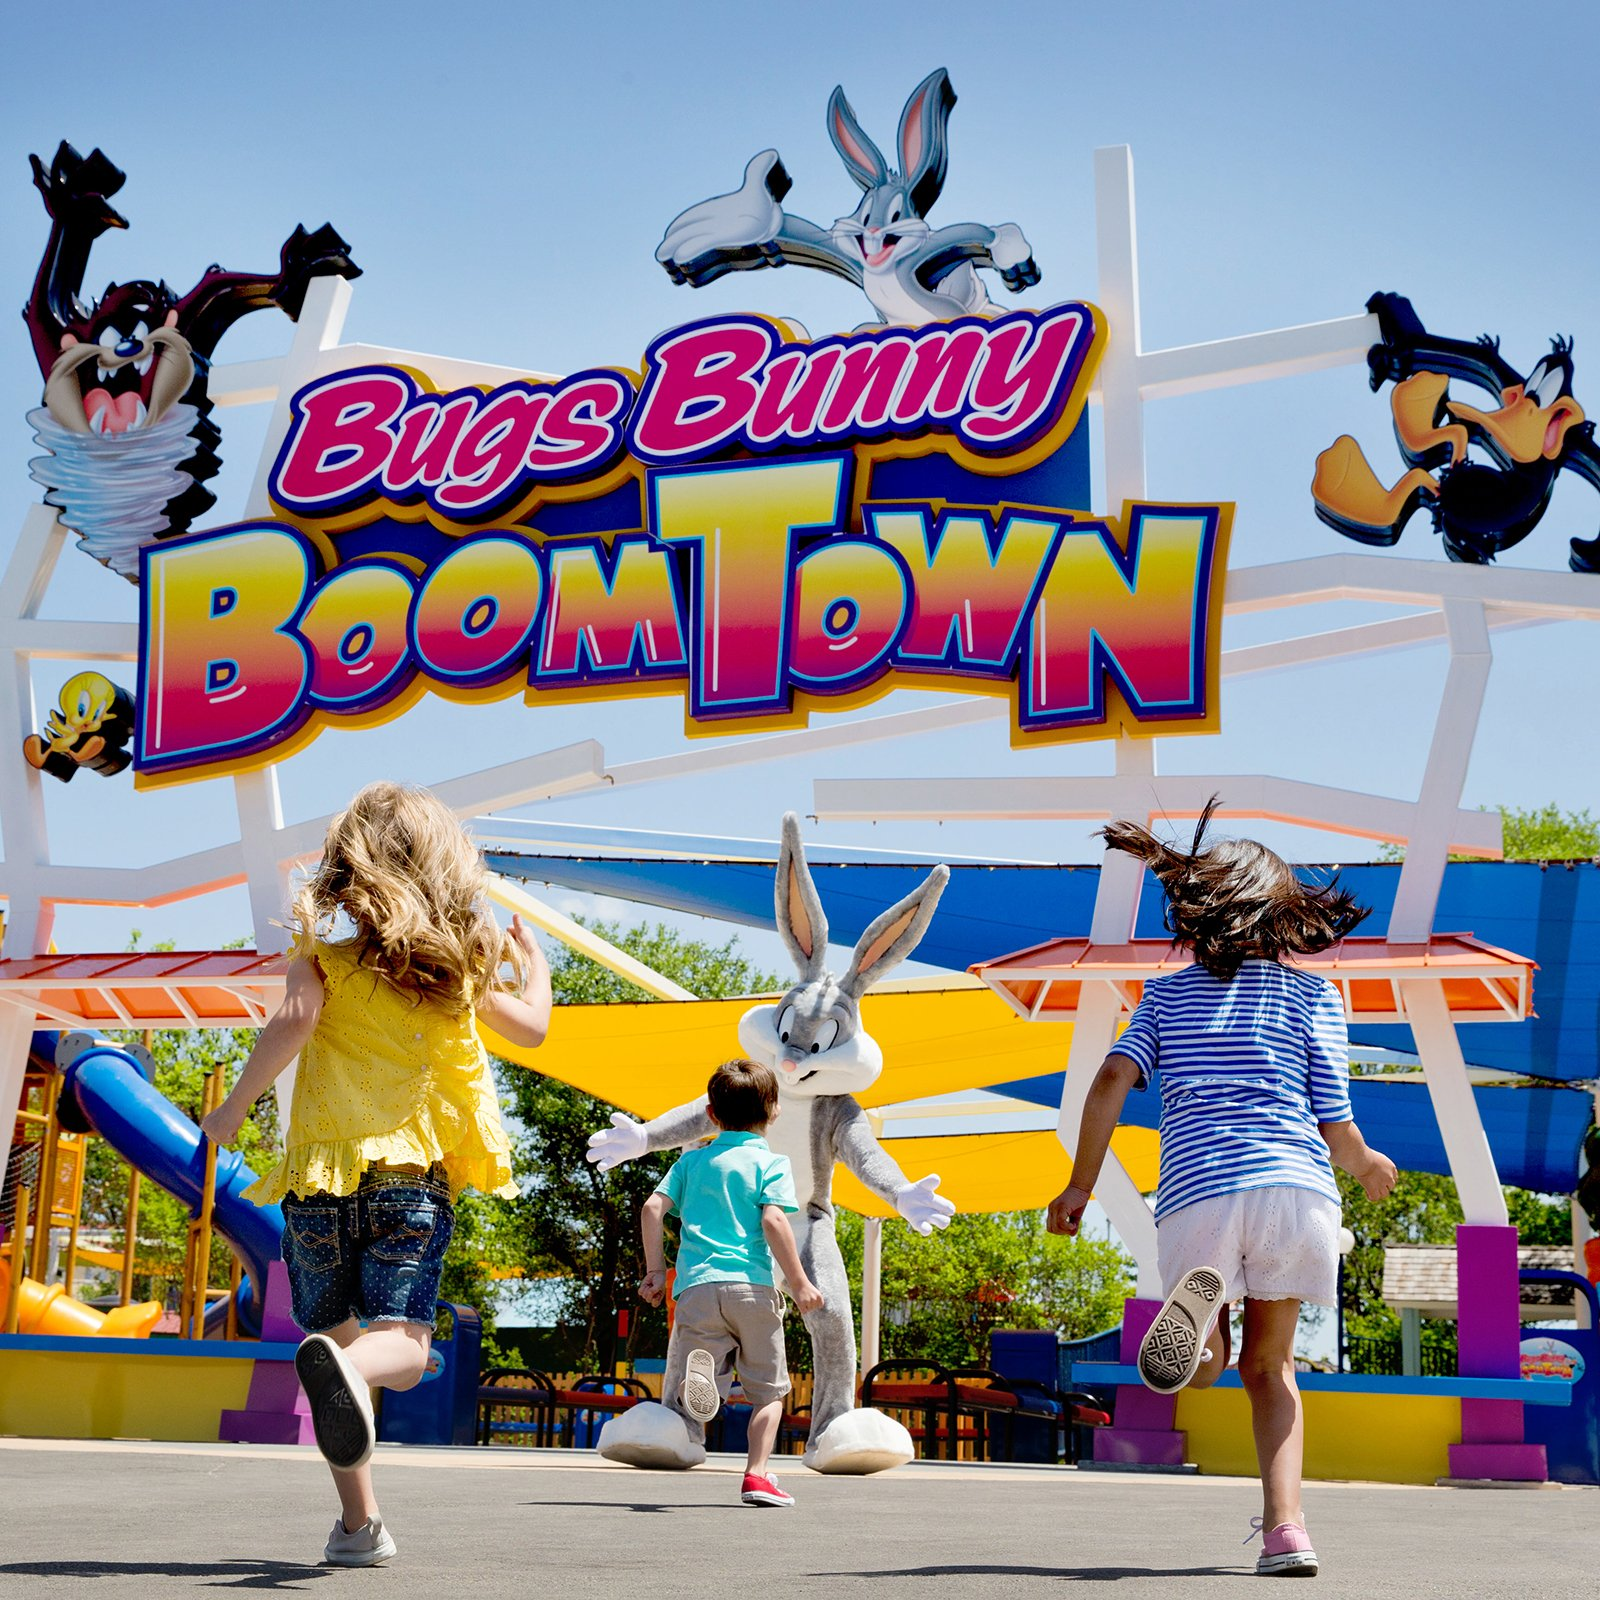 Bugs Bunny Boomtown at Six Flags Over Texas